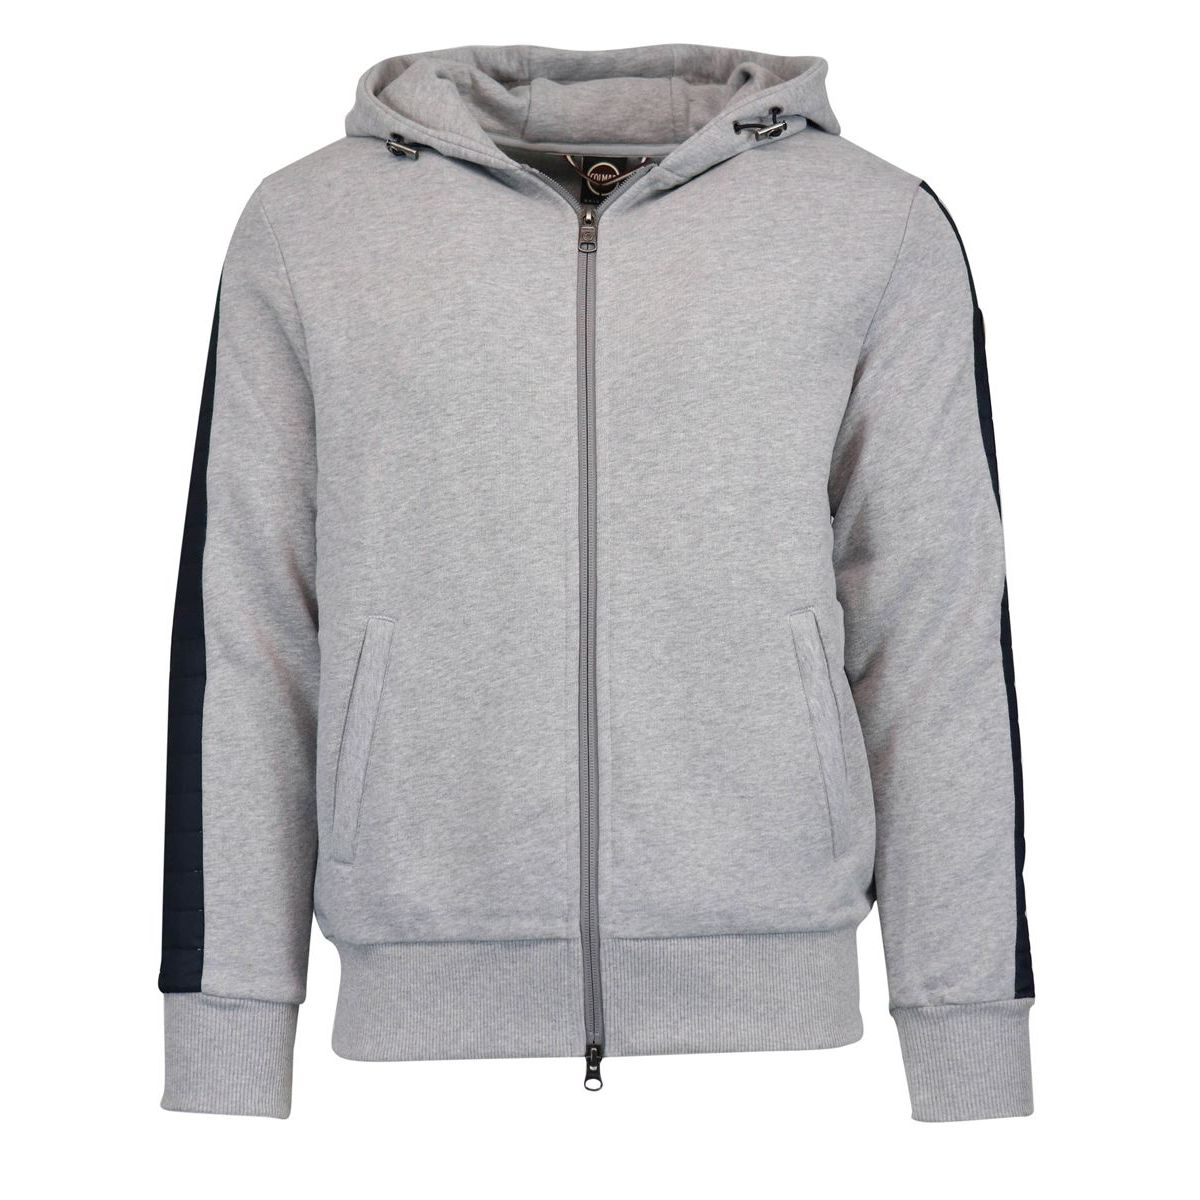 Sweatshirt with zip and hood with down effect inserts Grey Colmar